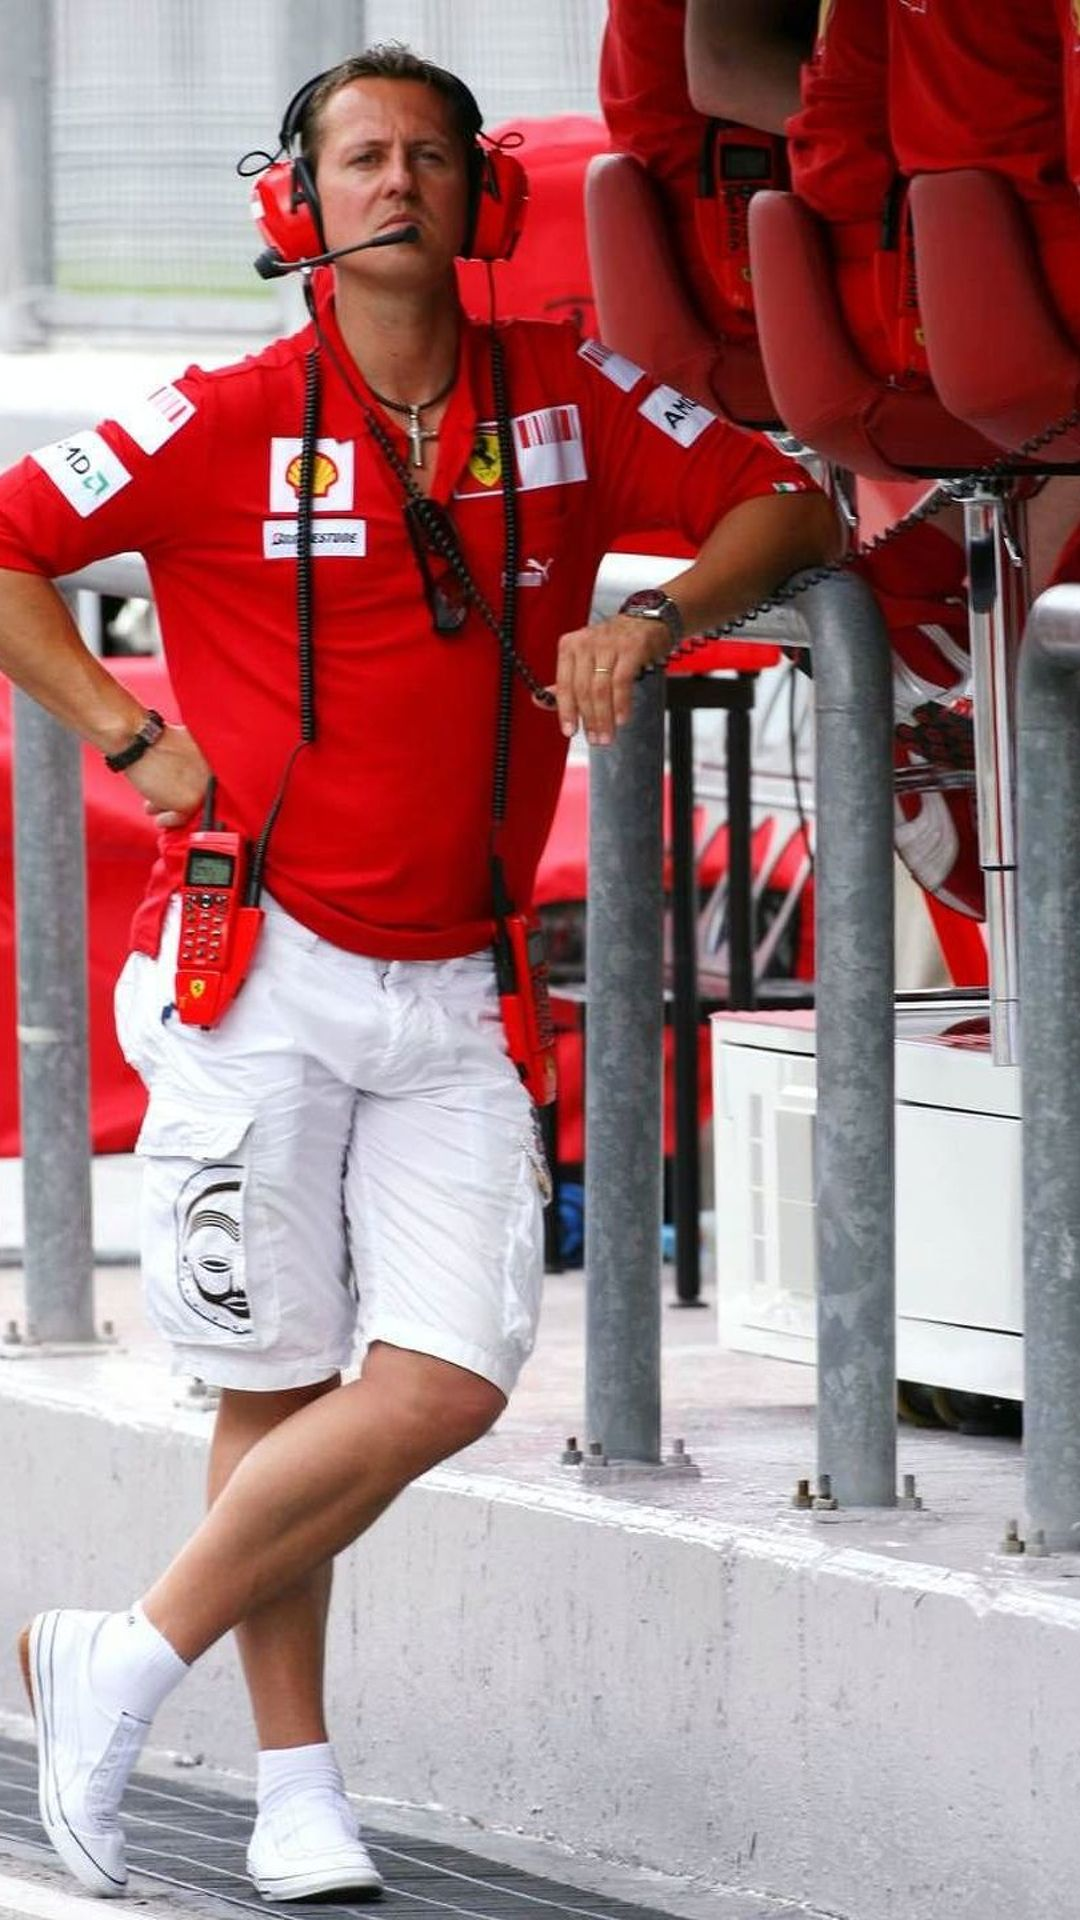 Schumacher cool as hopes for comeback remain